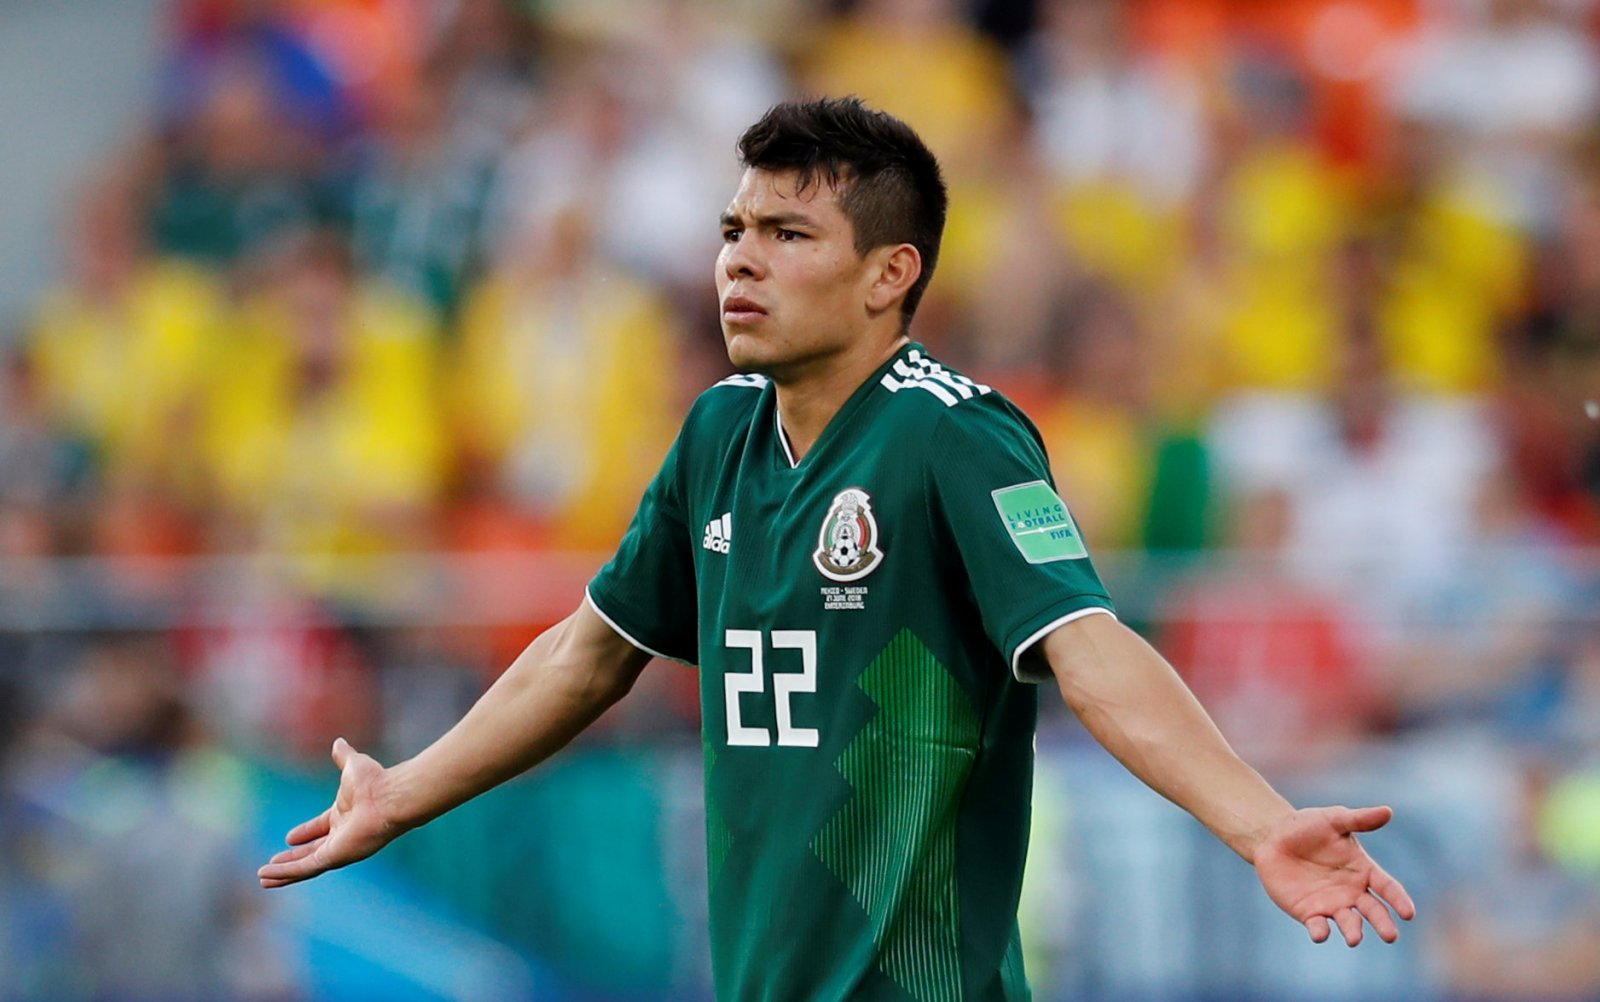 Hirving Lozano would be a strong January signing for Manchester United